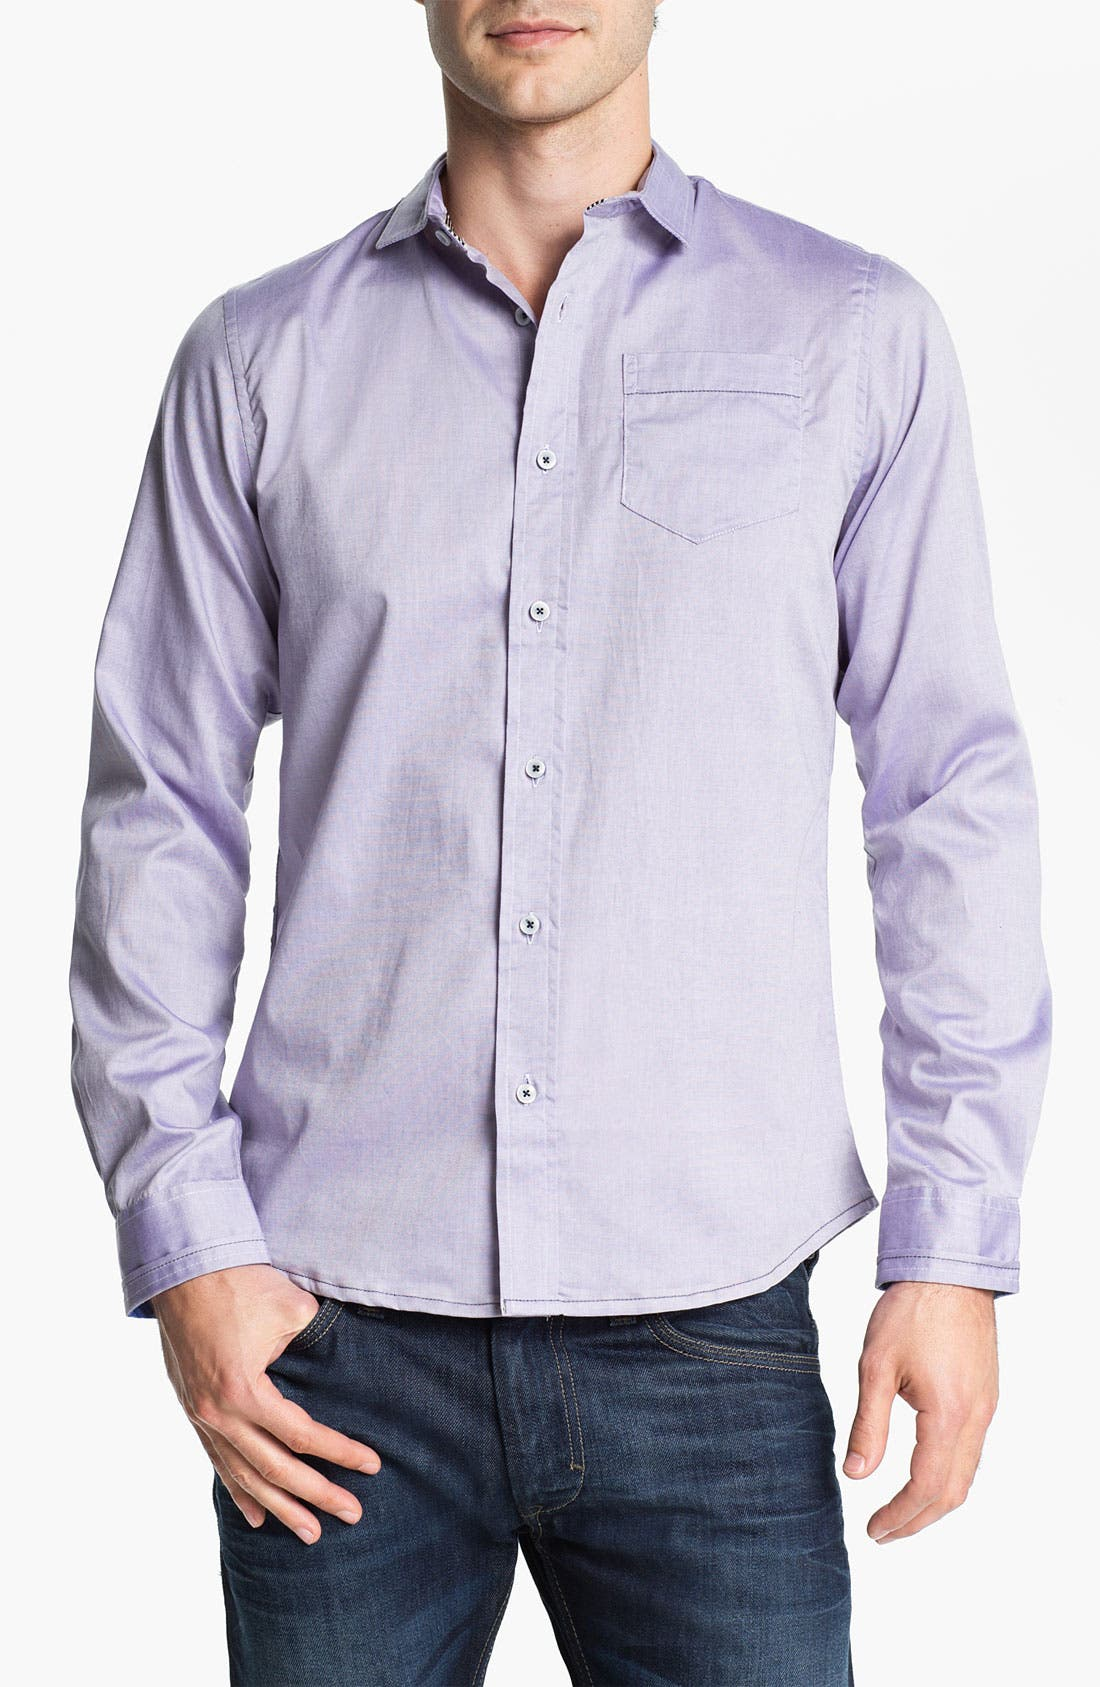 Main Image - Descendant of Thieves Oxford Woven Shirt